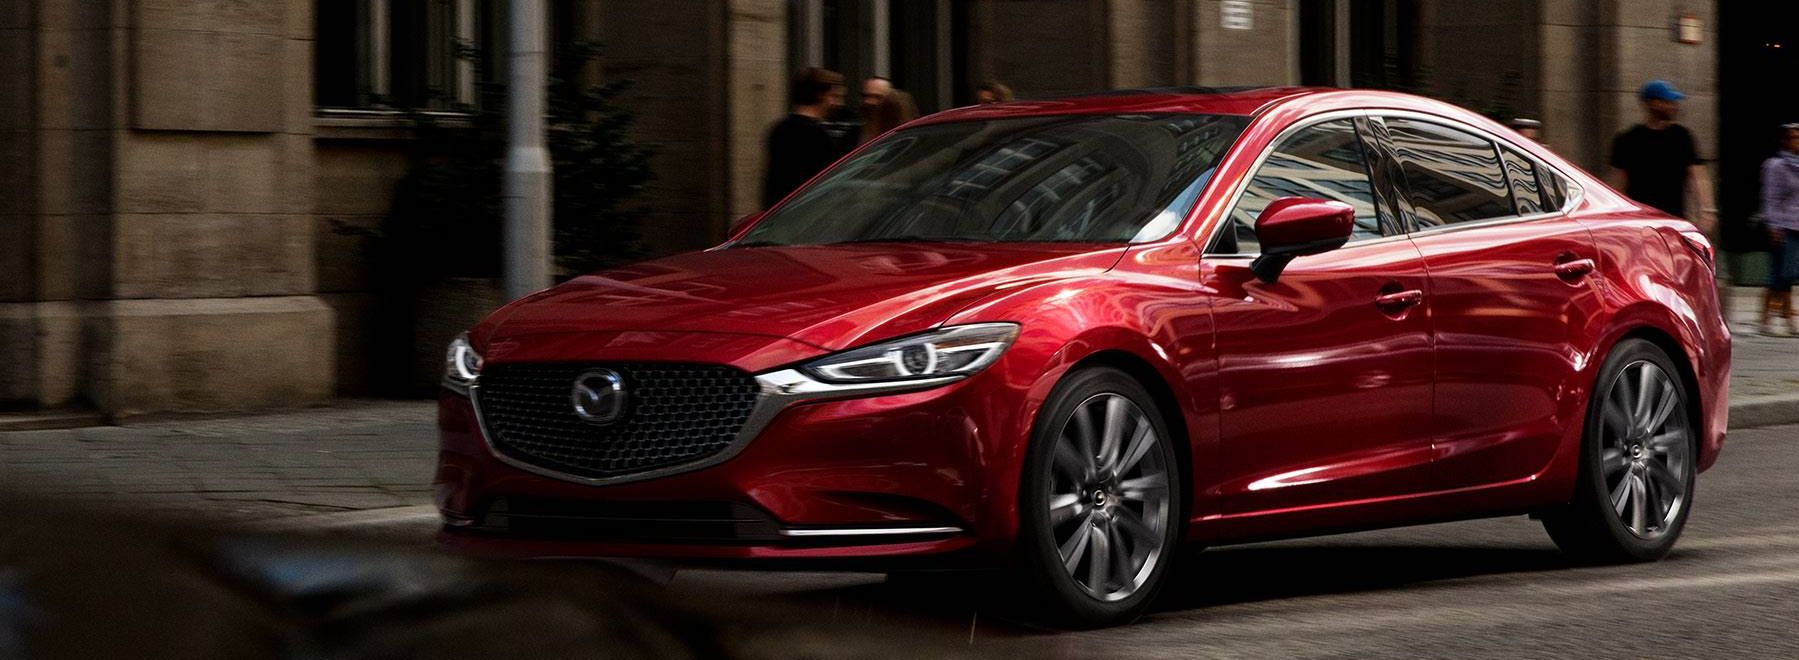 2018 Mazda6 Leasing near New Braunfels, TX